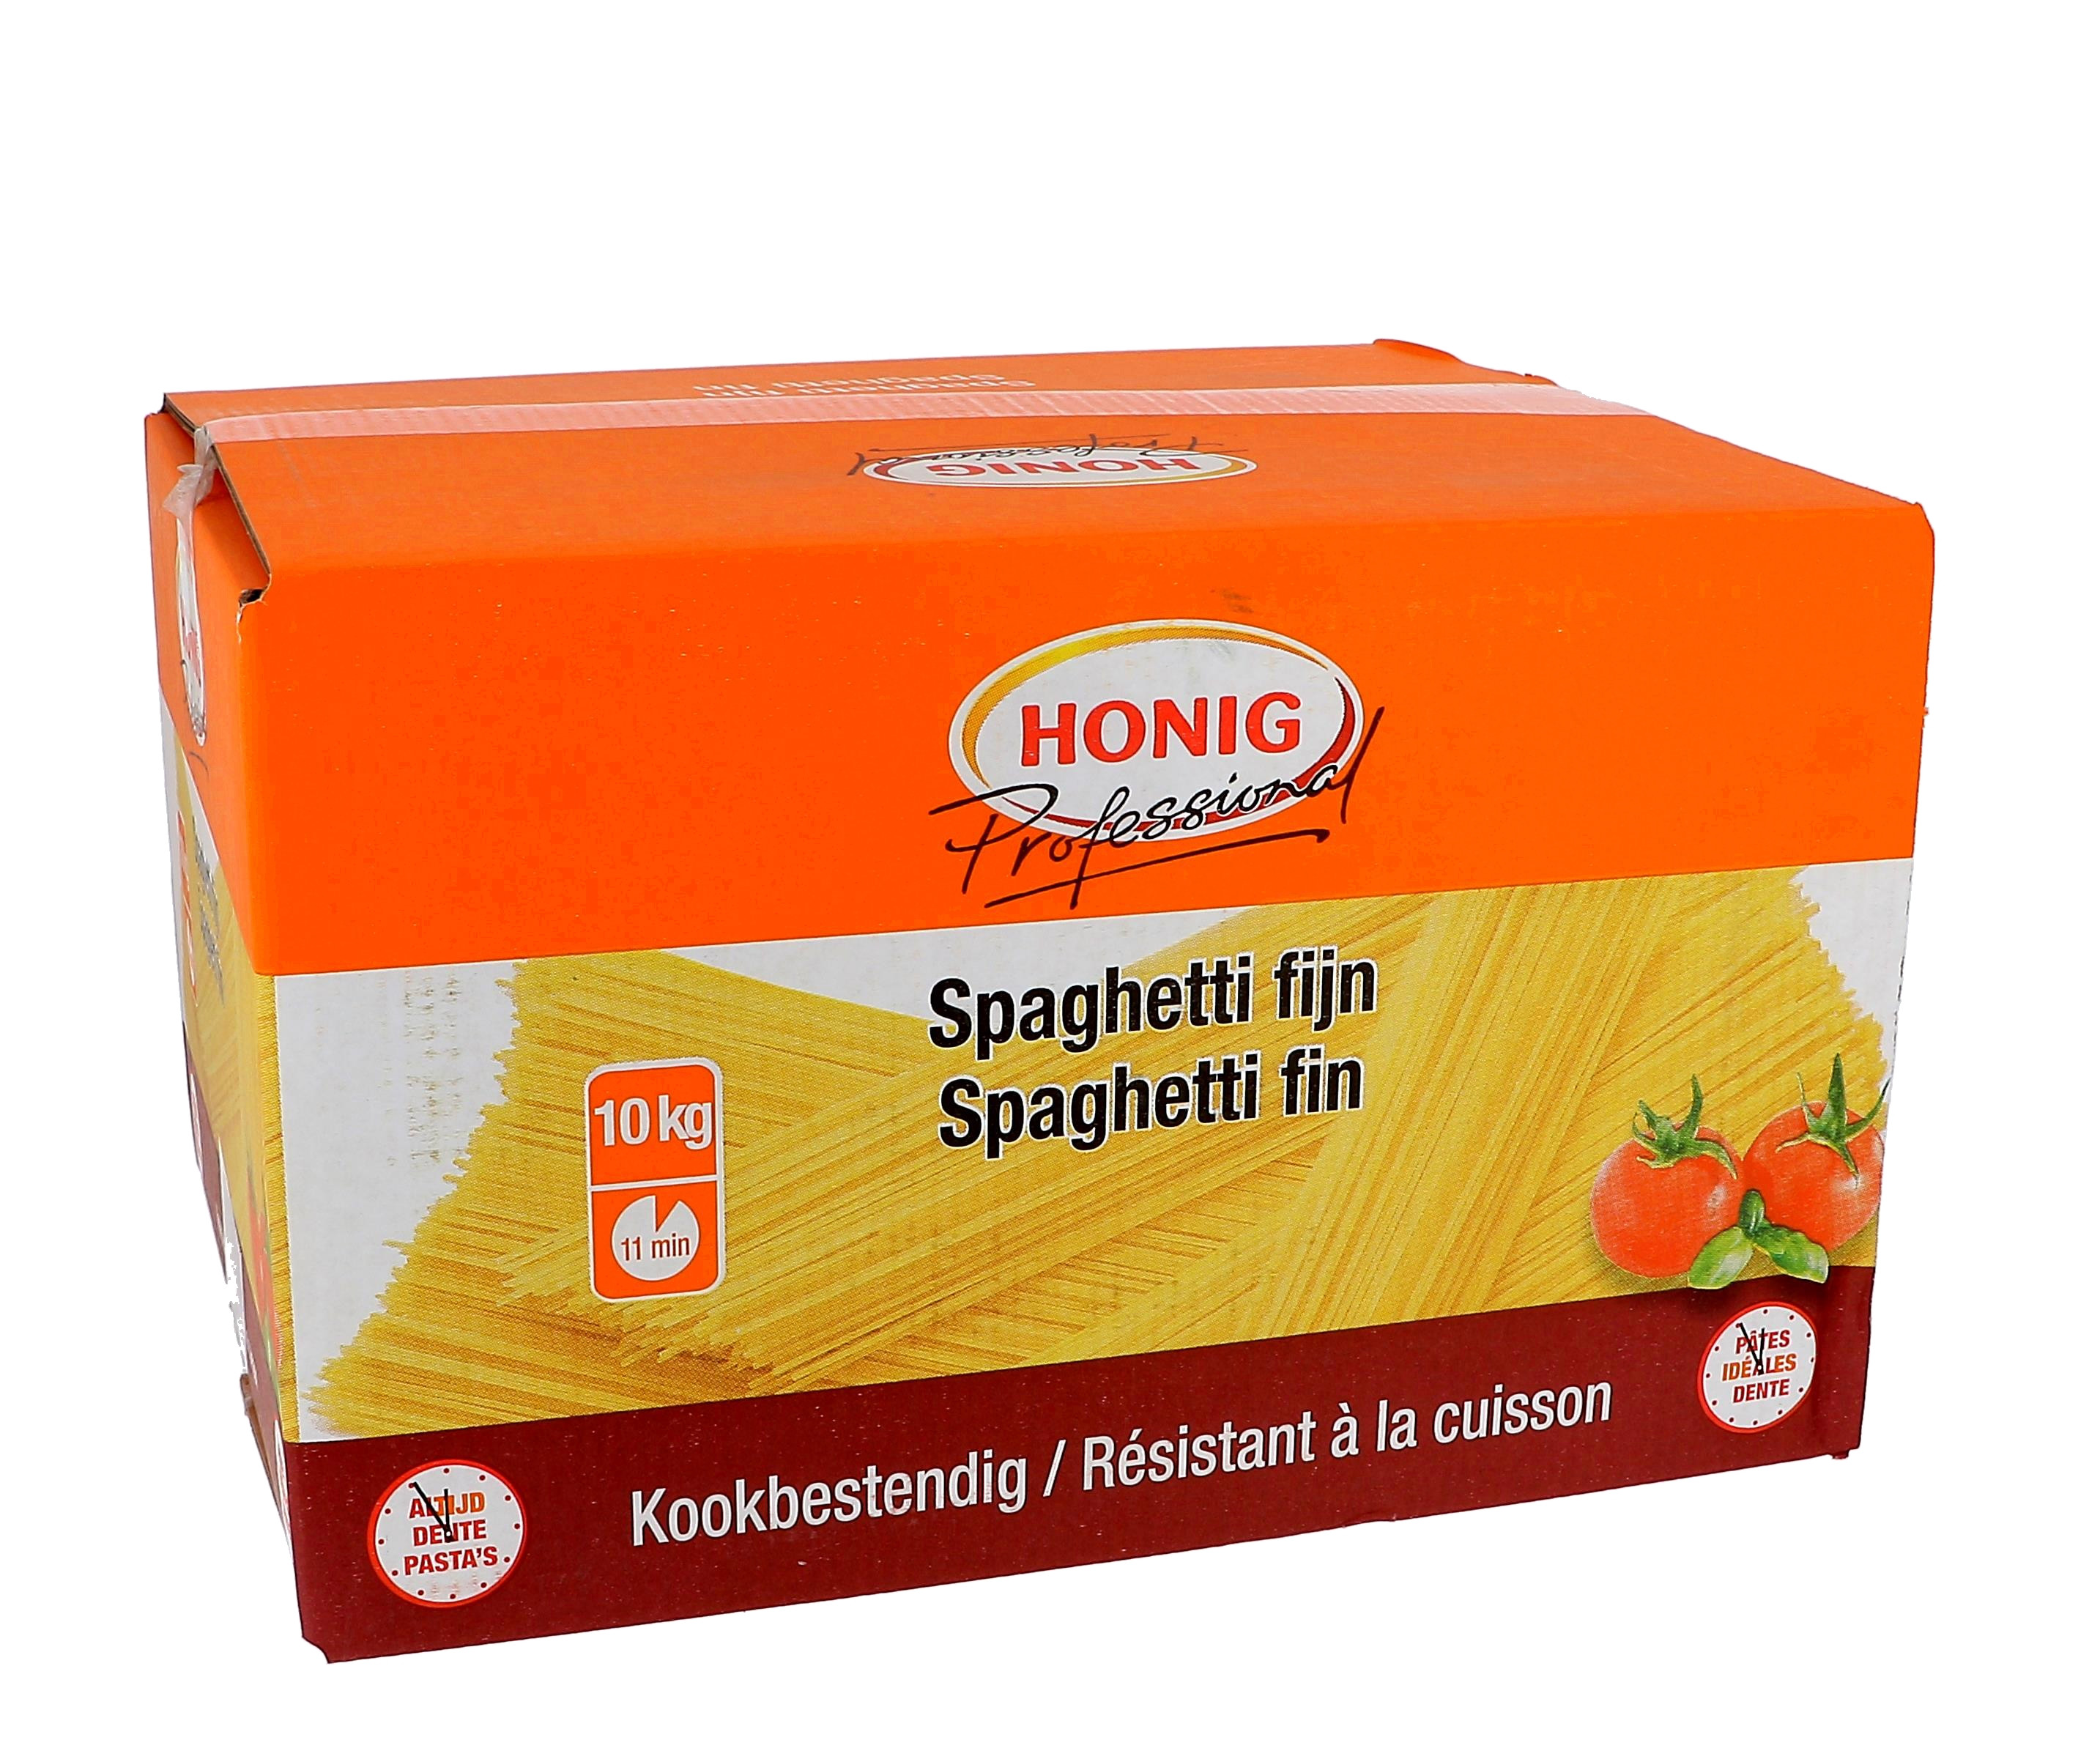 Honig fine spaghetti 10kg Professional cooking resistant